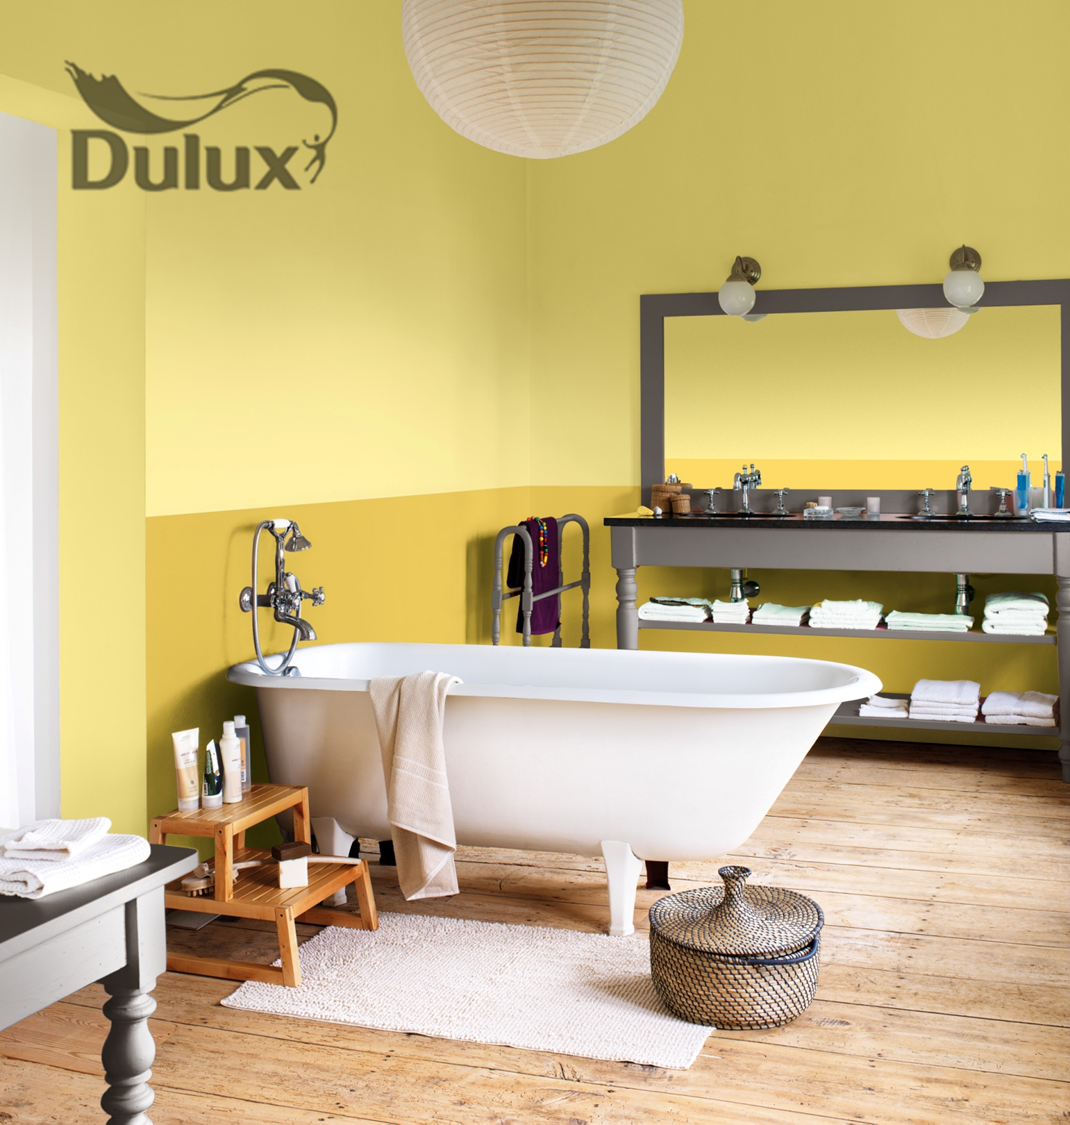 dulux colour yellow bathroom golds and yellows